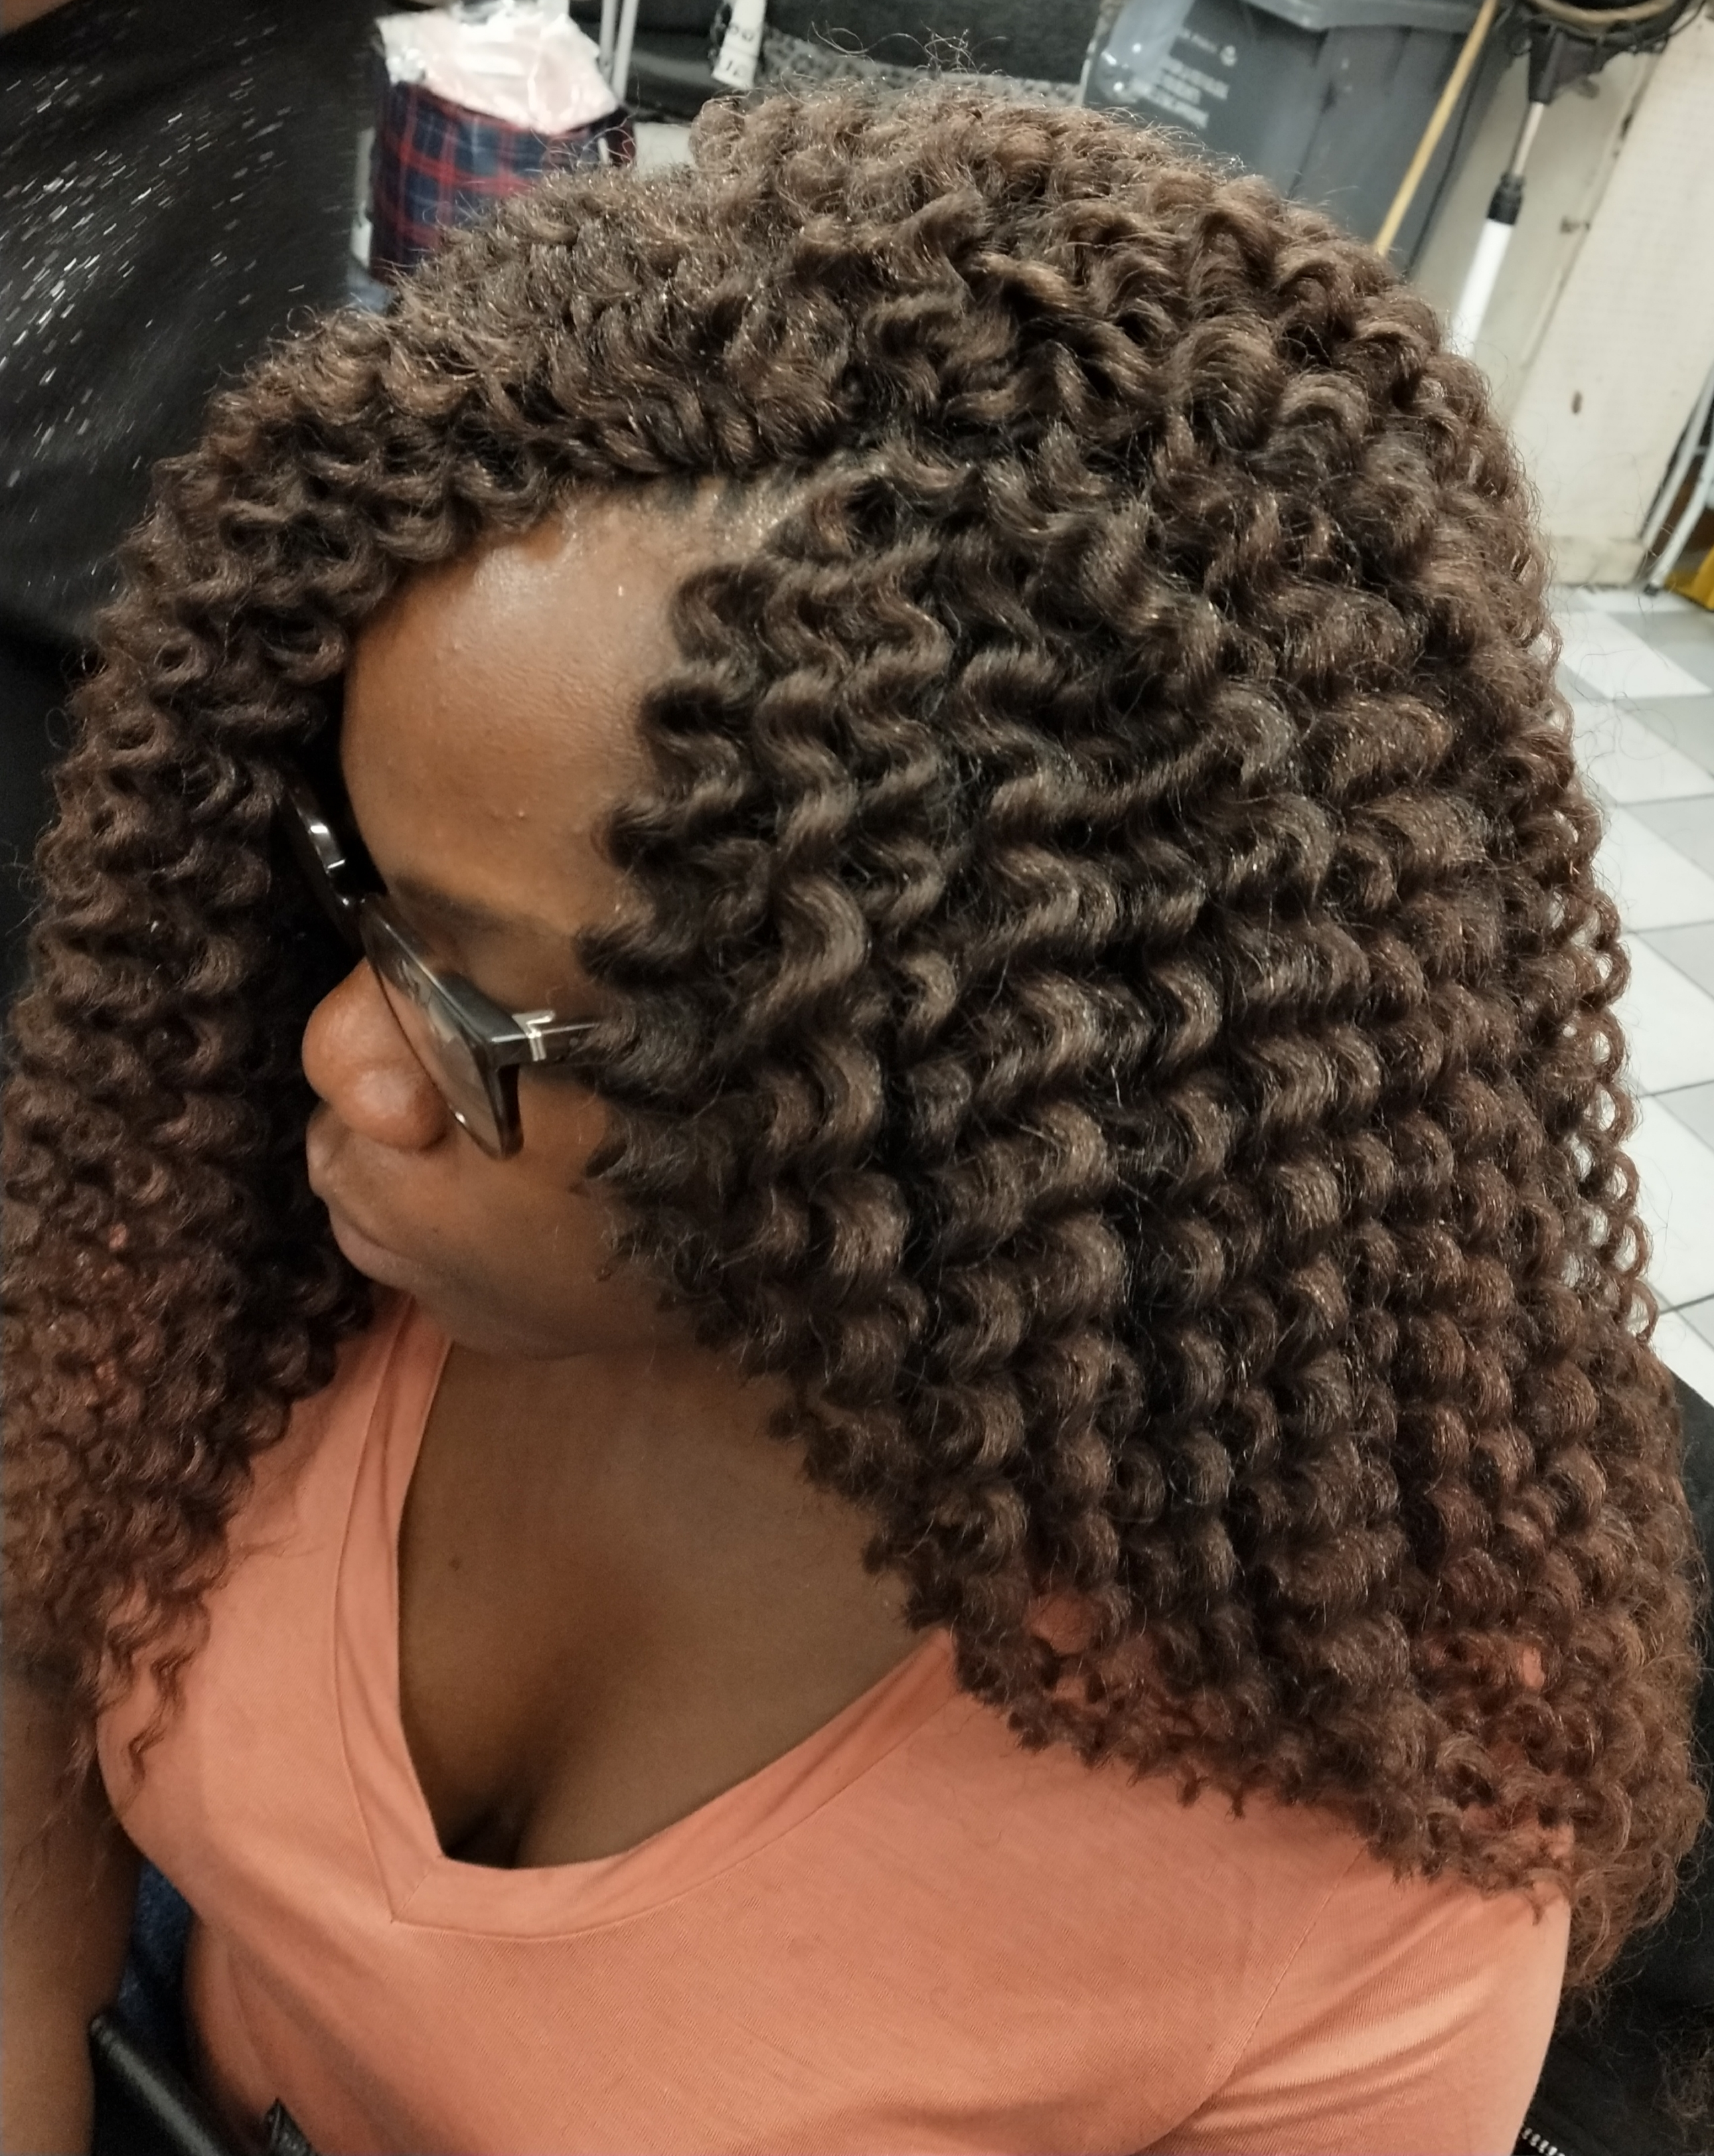 salon de coiffure afro tresse tresses box braids crochet braids vanilles tissages paris 75 77 78 91 92 93 94 95 USQXXVWE